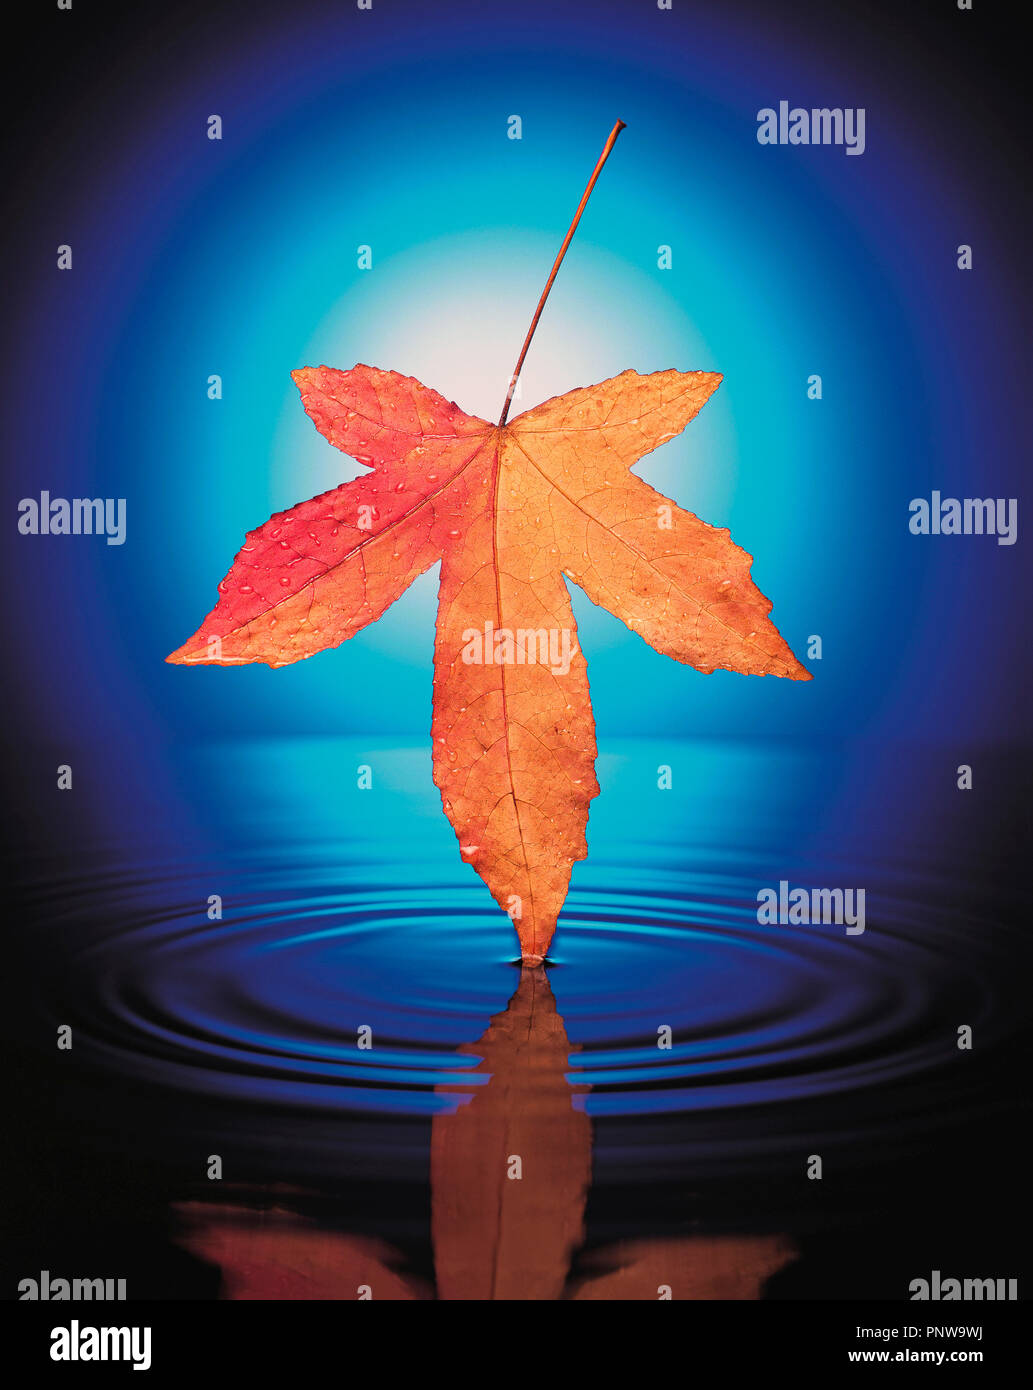 Still life art photograph concept of autumn Maple leaf over water. - Stock Image